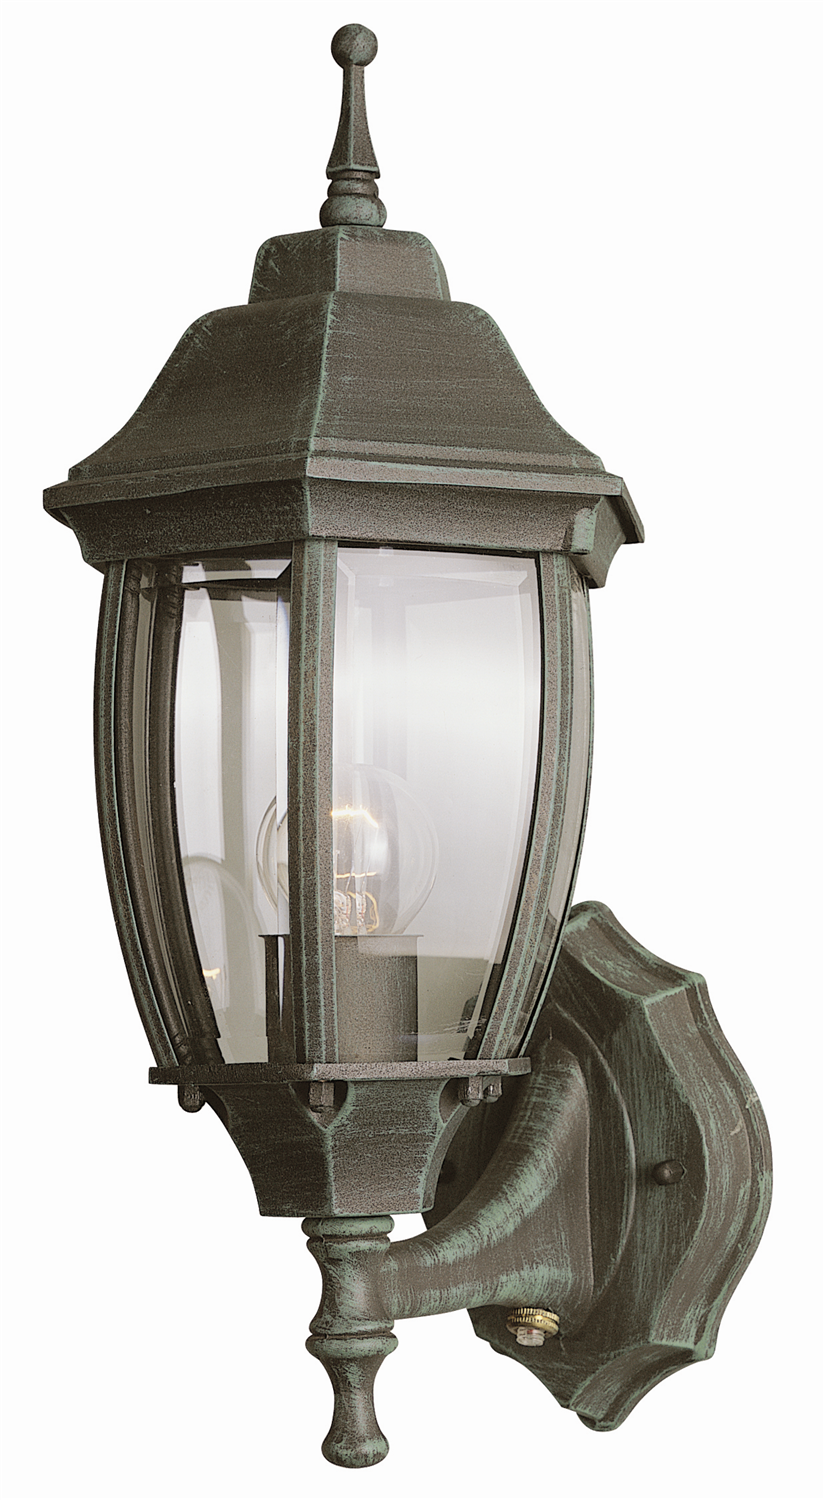 Wall Sconce With Photocell : TGL Photocell Outdoor Wall Sconce by Trans Globe 4470 RT